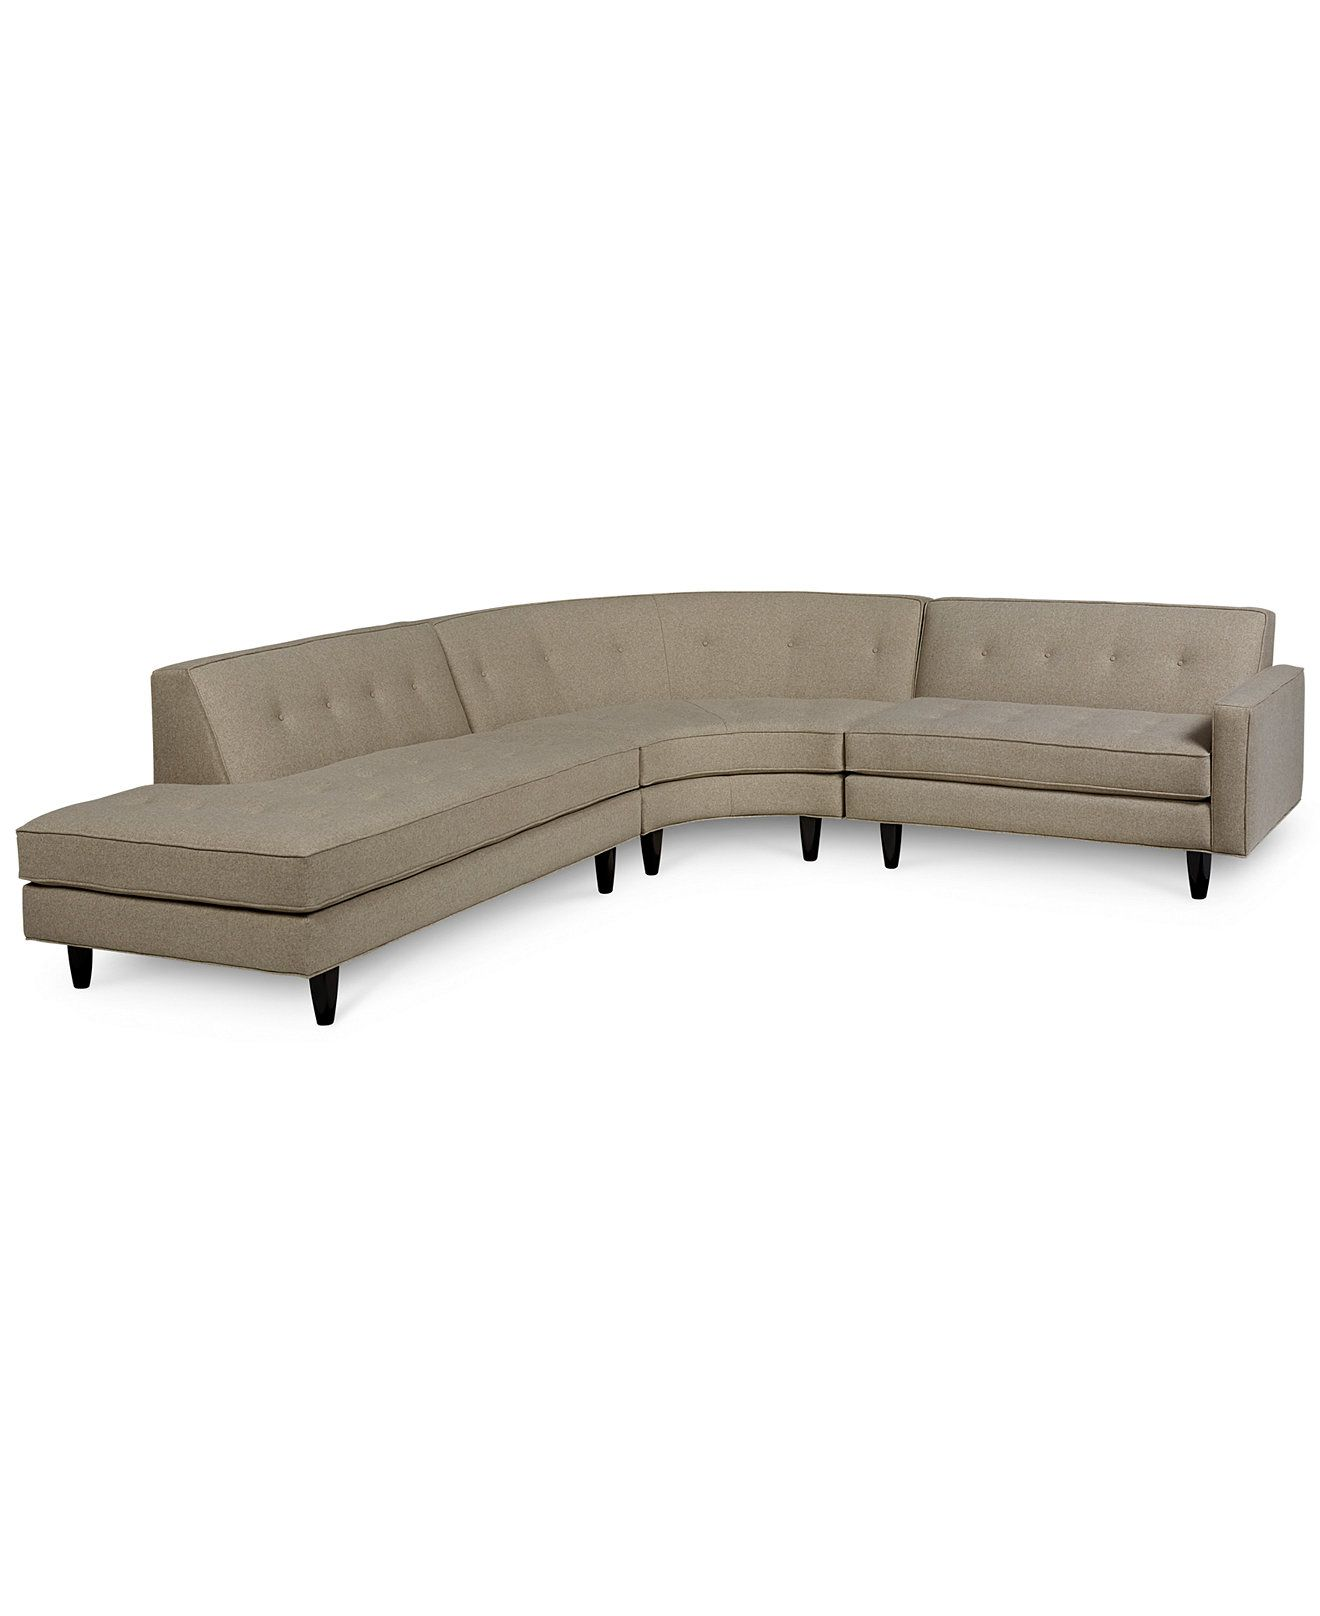 Shayla 3 Piece Curved Sectional Sectional Sofas Furniture